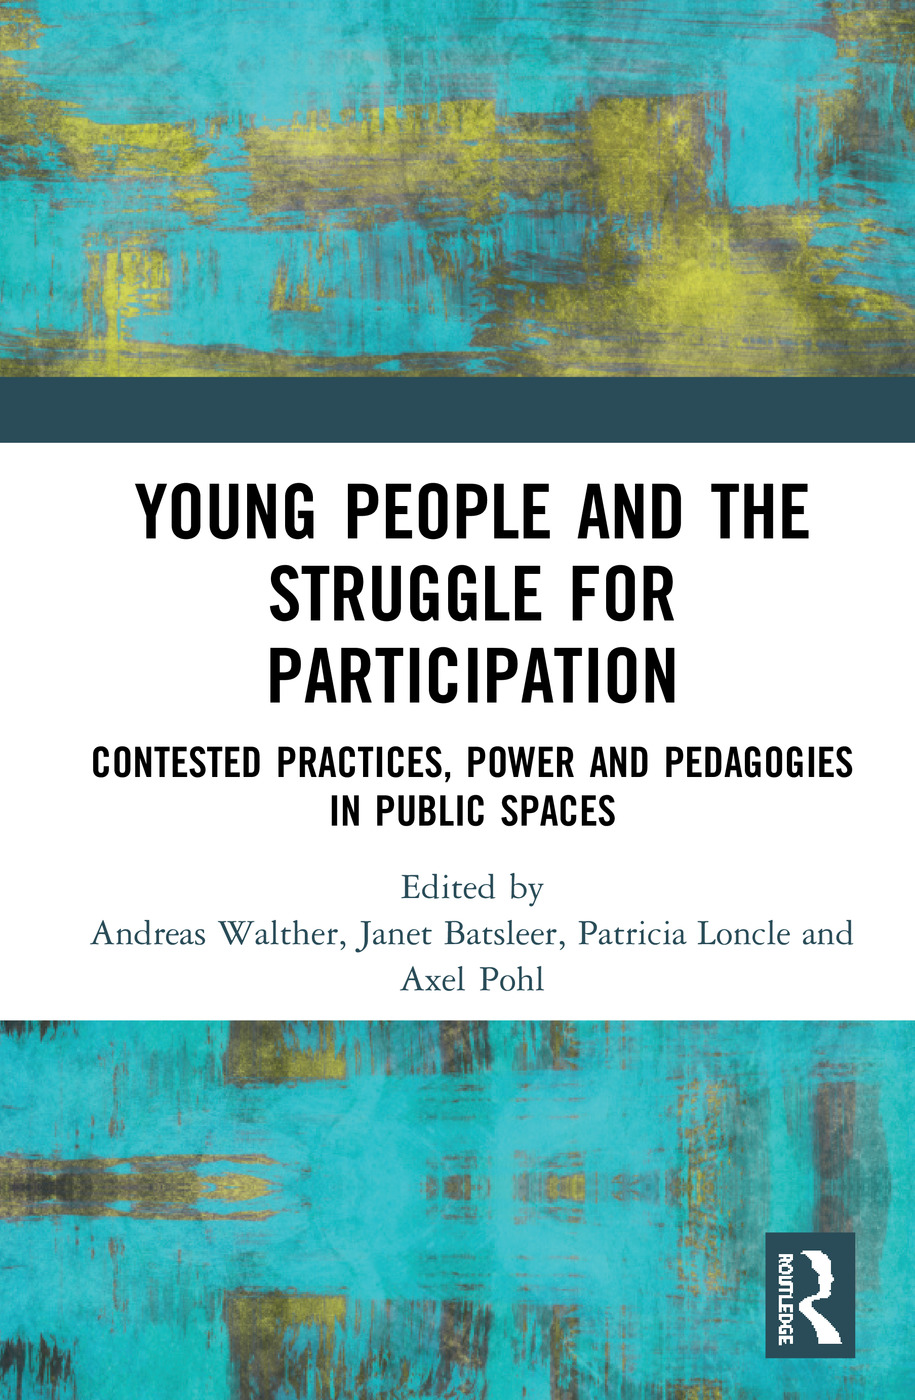 Young People and the Struggle for Participation: Contested Practices, Power and Pedagogies in Public Spaces book cover